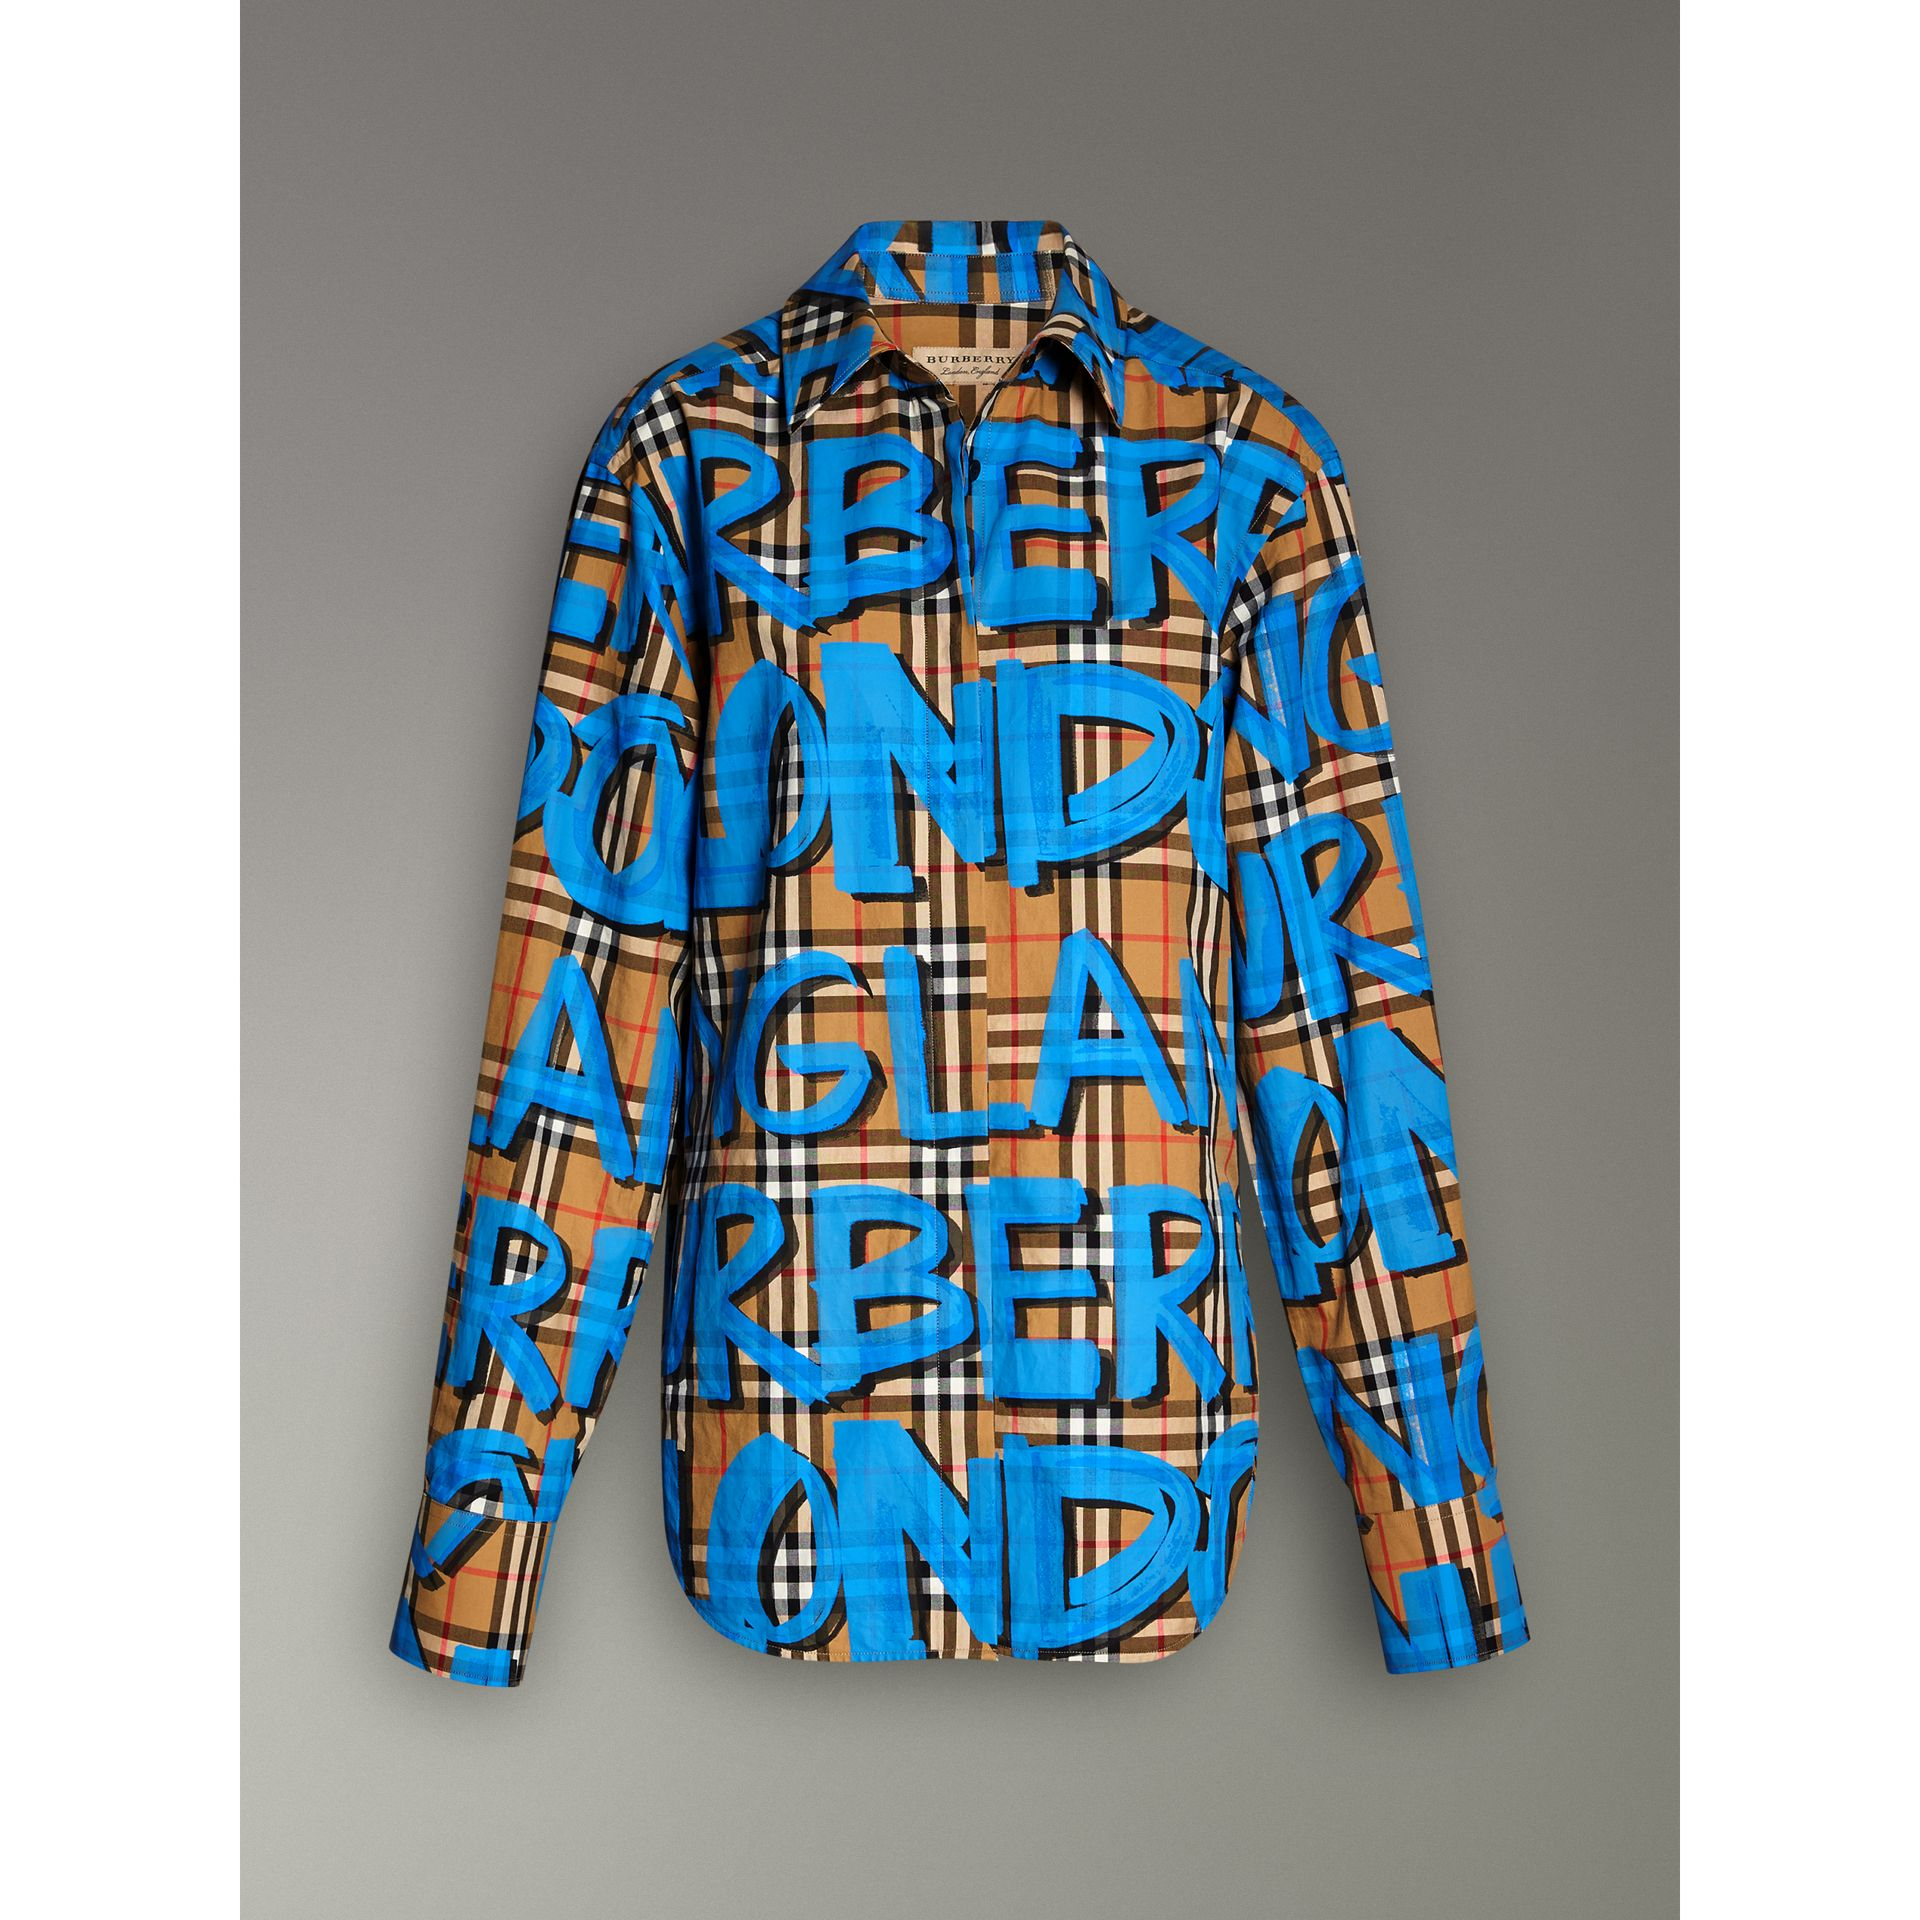 Graffiti Print Vintage Check Cotton Shirt in Bright Blue | Burberry Hong Kong - gallery image 3